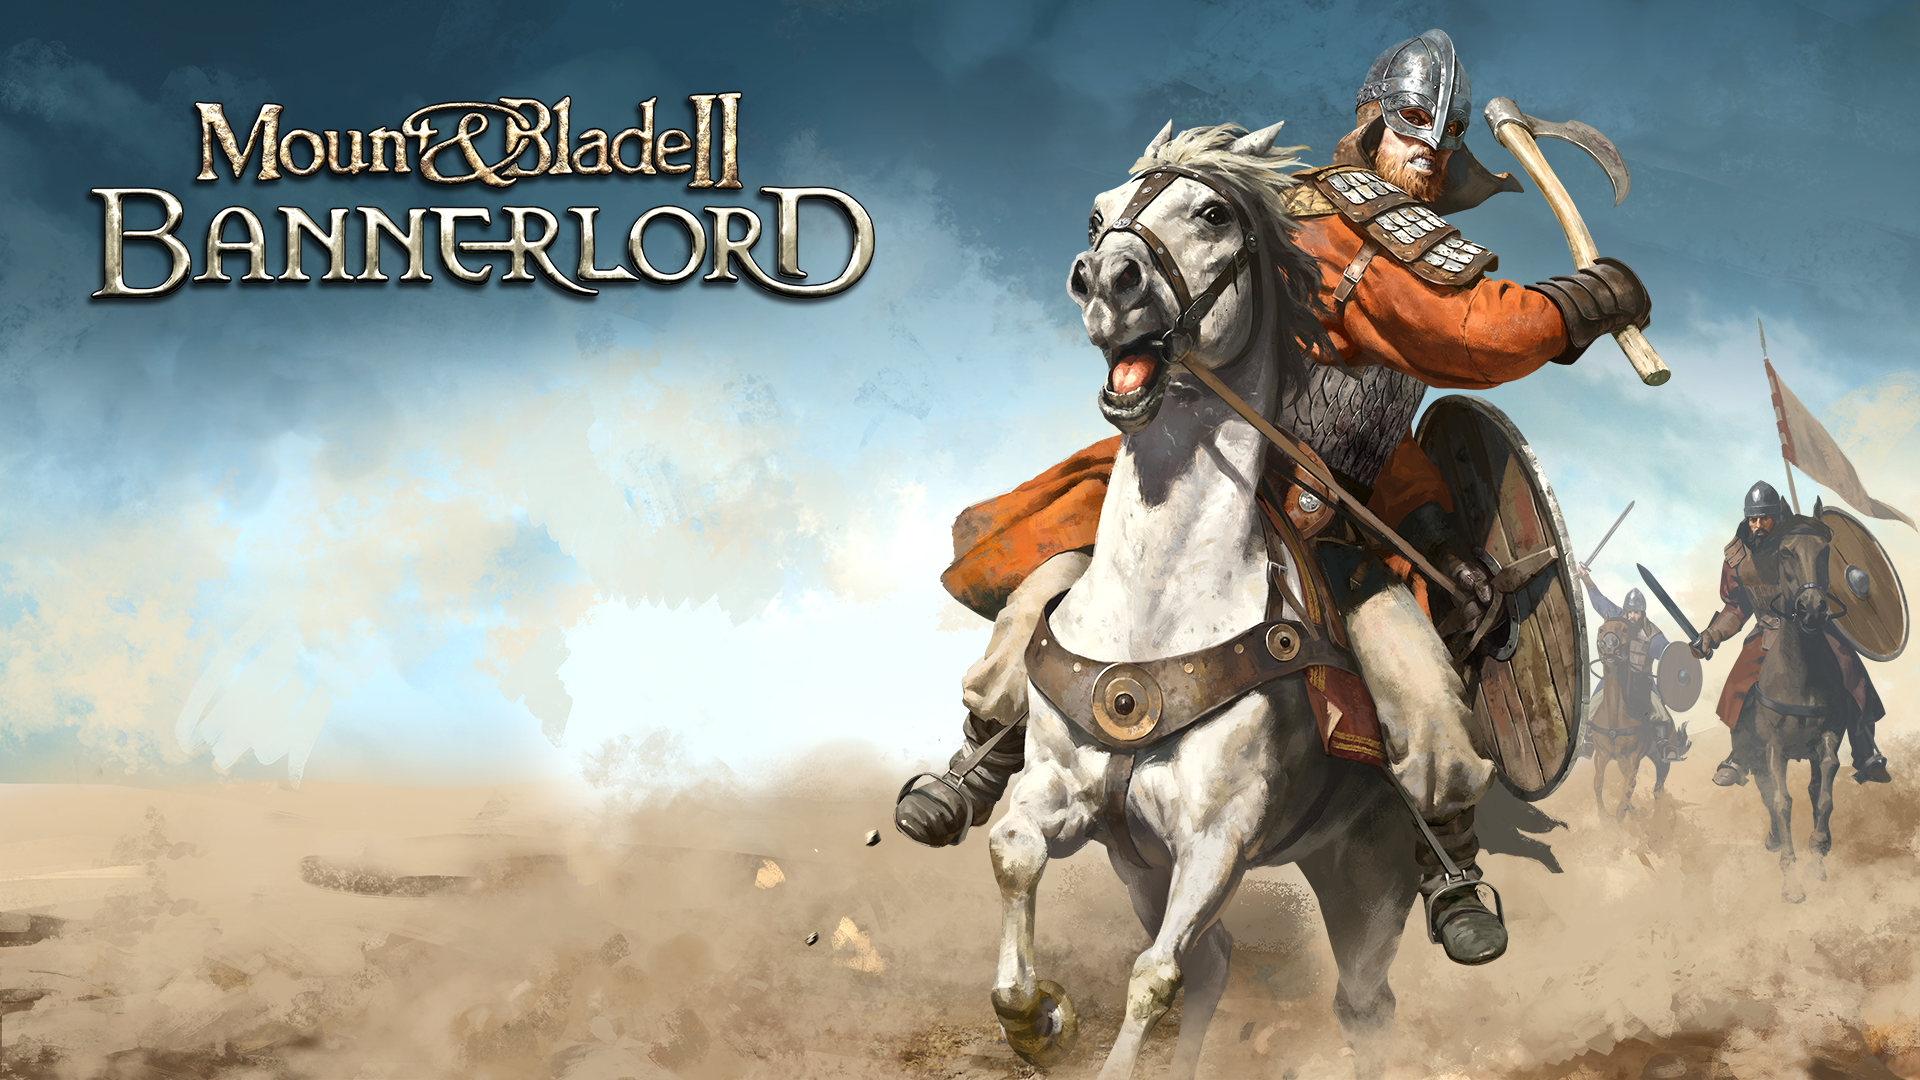 Mount & Blade II: Bannerlord has a new Early Access date - March 30th